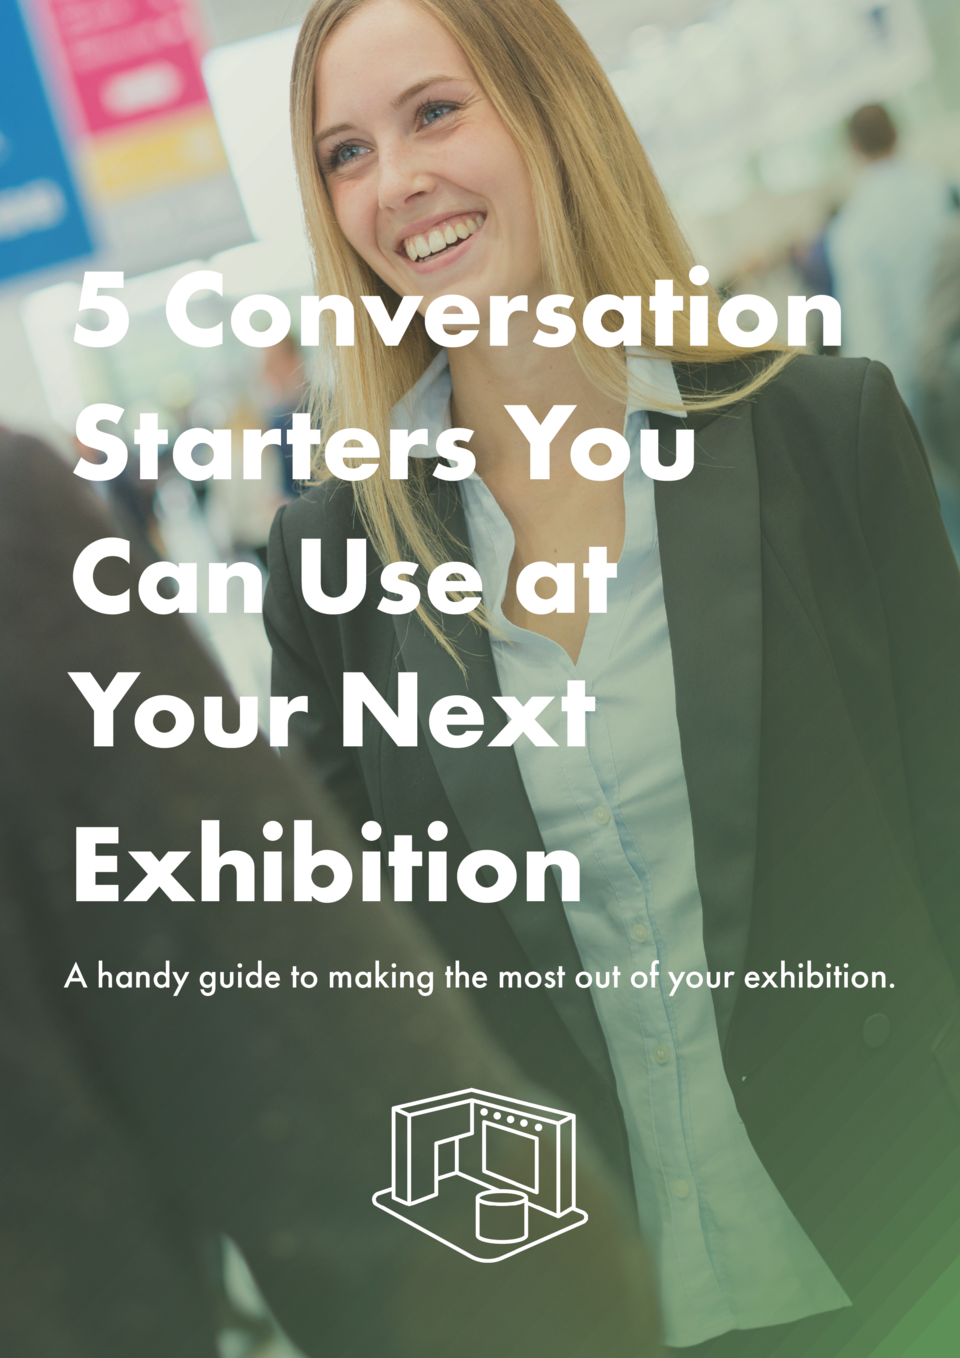 5 Conversation Starters You Can Use at Your Next Exhibition A handy guide to making the most out of your exhibition.